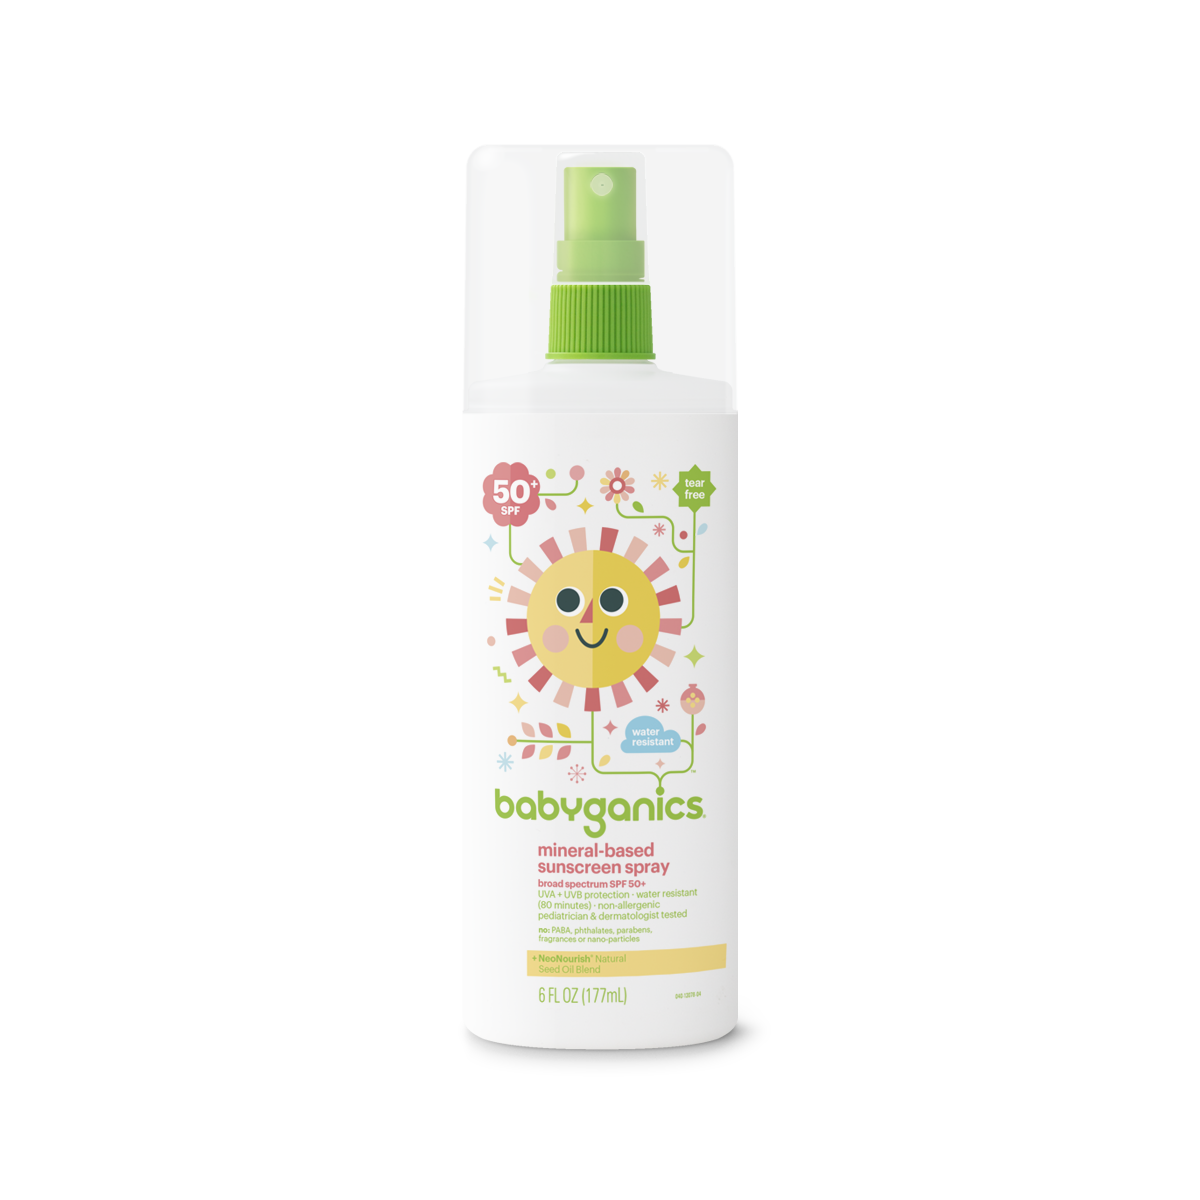 Babyganics Mineral-Based Sunscreen Spray, 50 SPF, 6oz